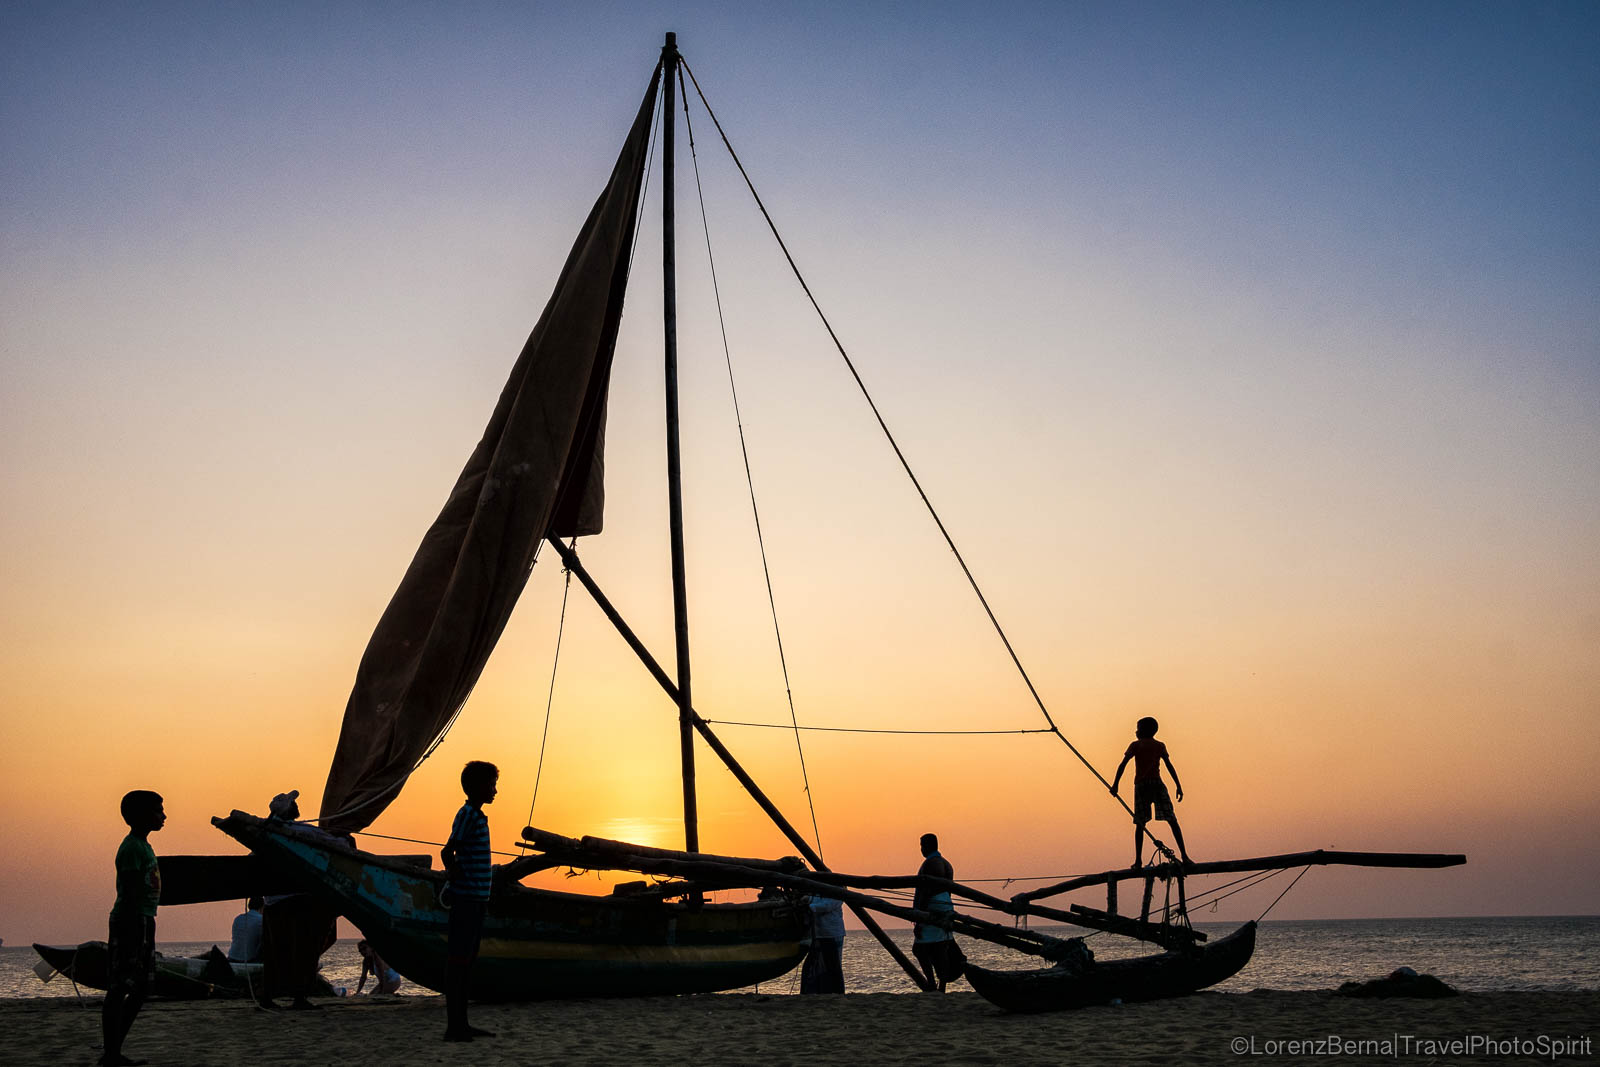 Childen playing on a sailing boat standing on Negombo beach at sunset - A photography of Sri Lanka by Lorenz Berna